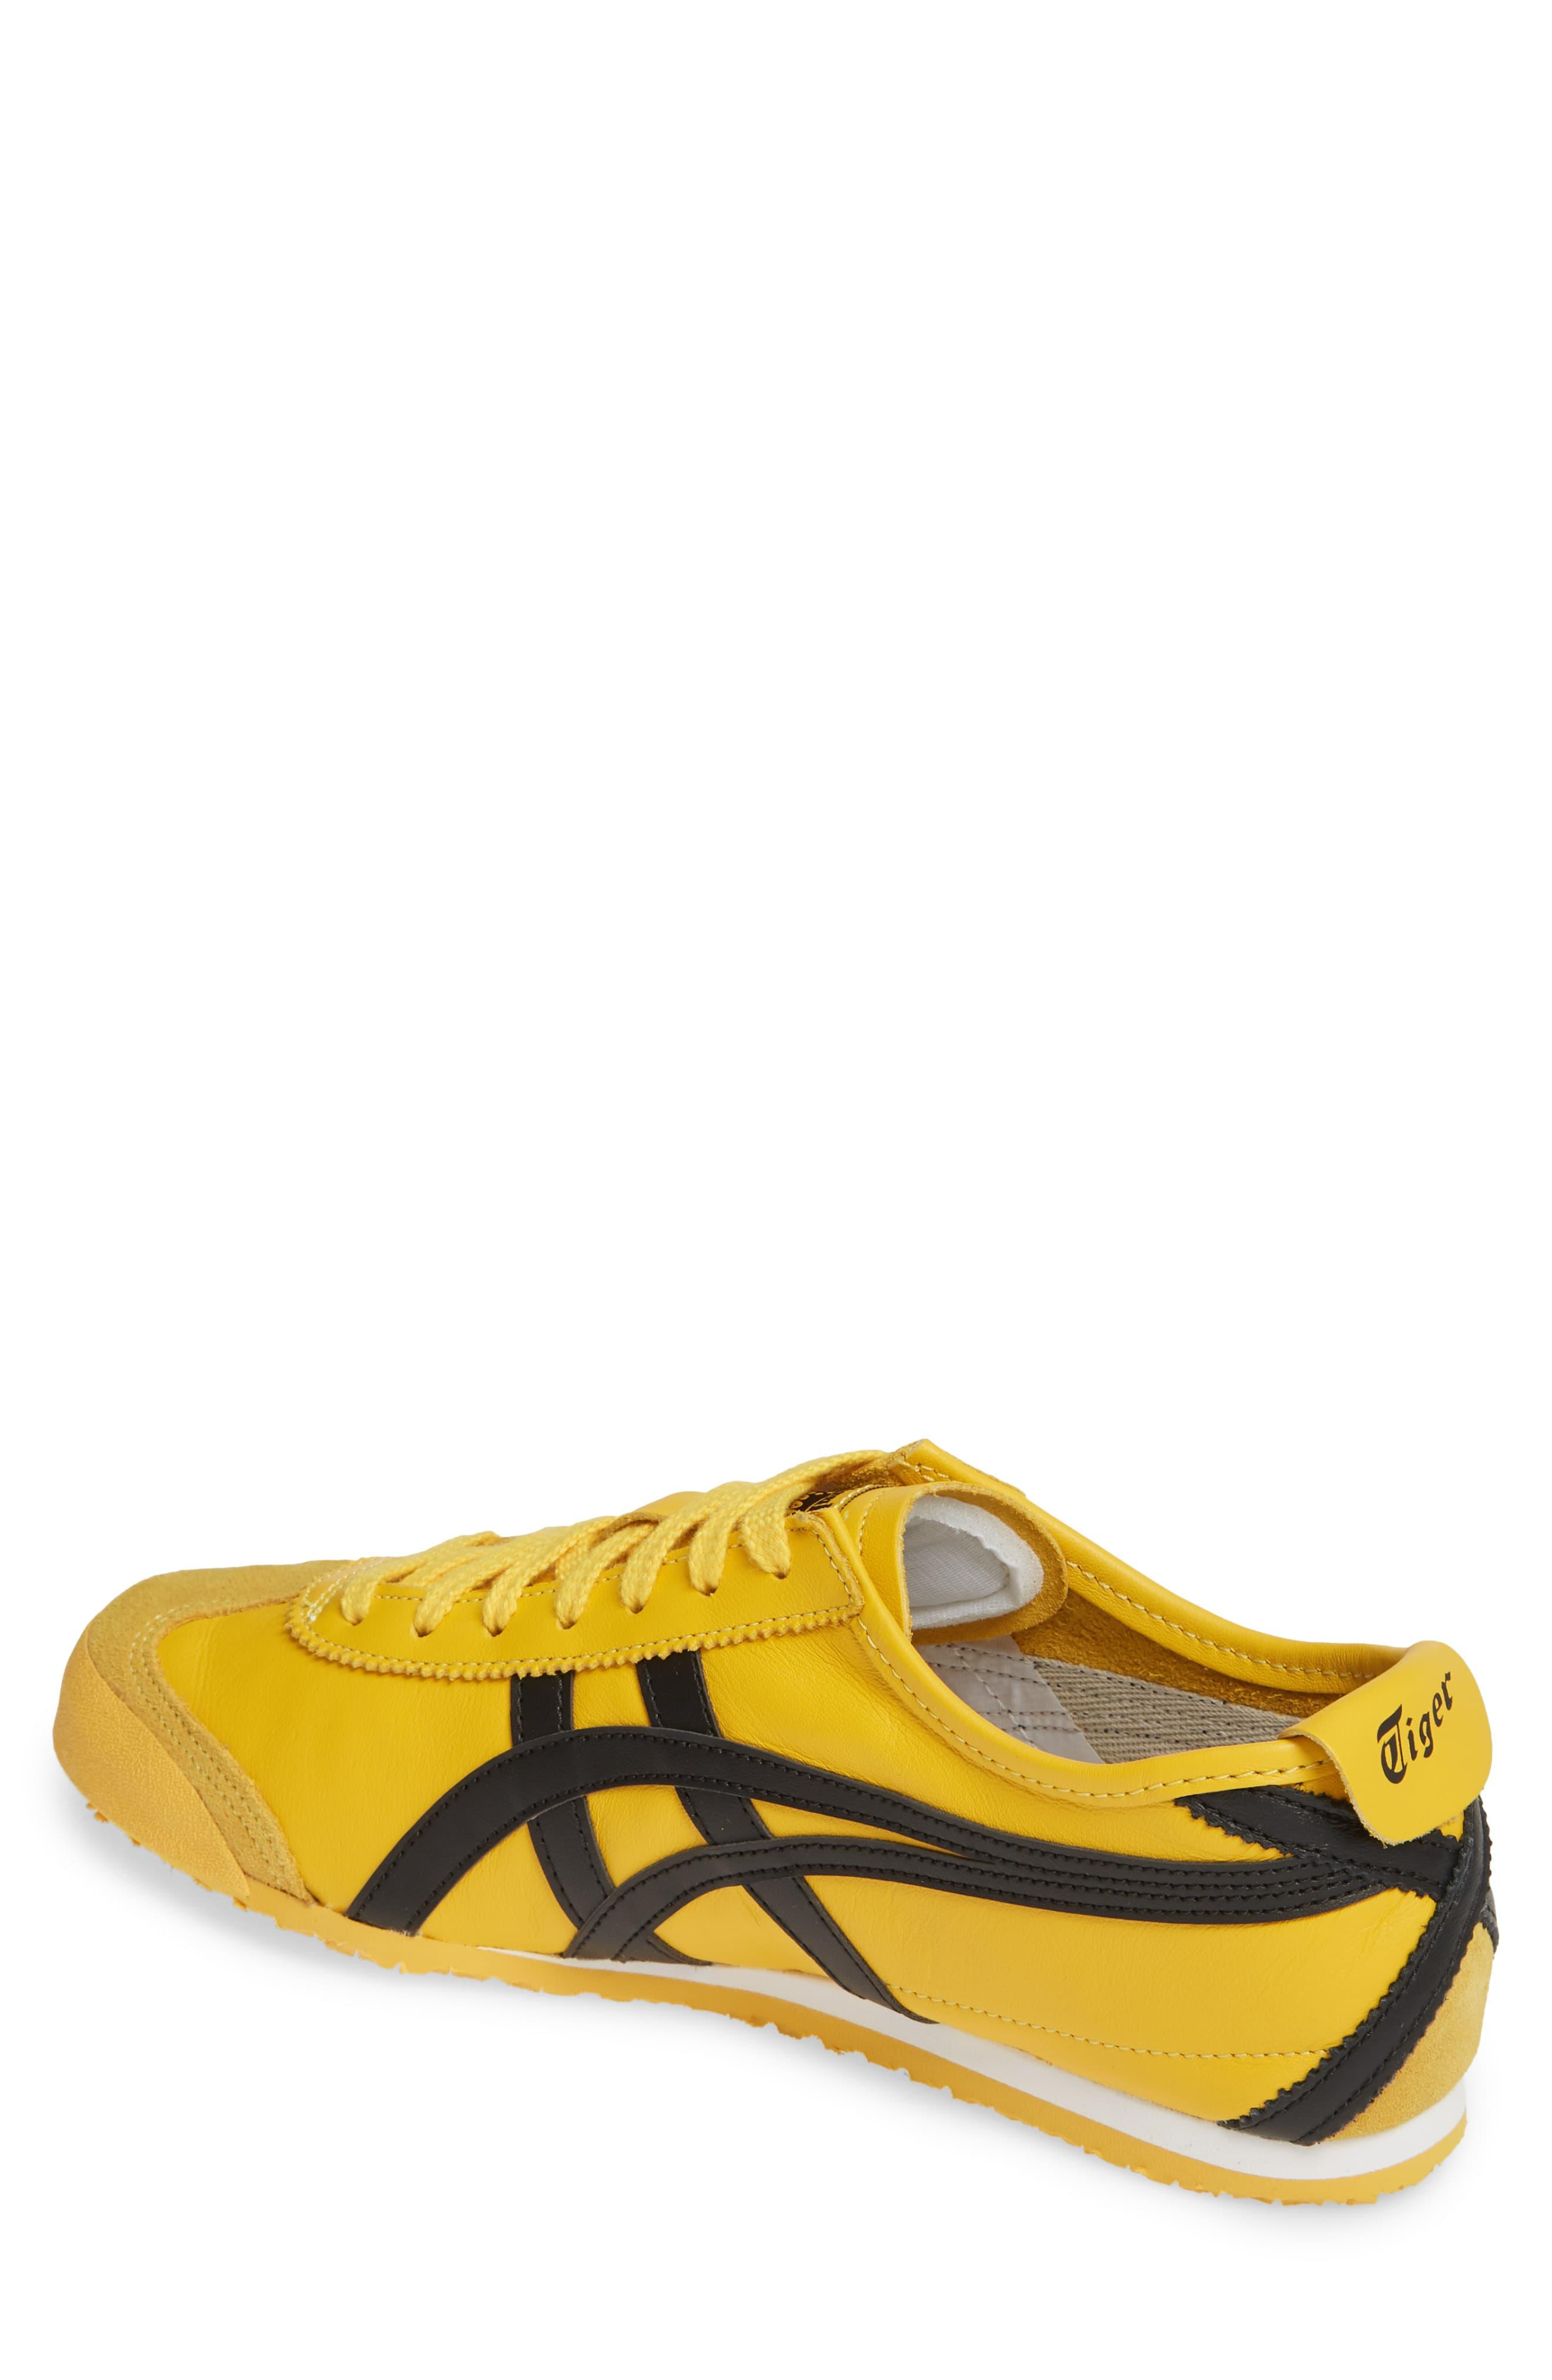 huge discount 1ed72 406a3 Men's Yellow Asics Onitsuka Tiger Mexico 66 Low Top Sneaker